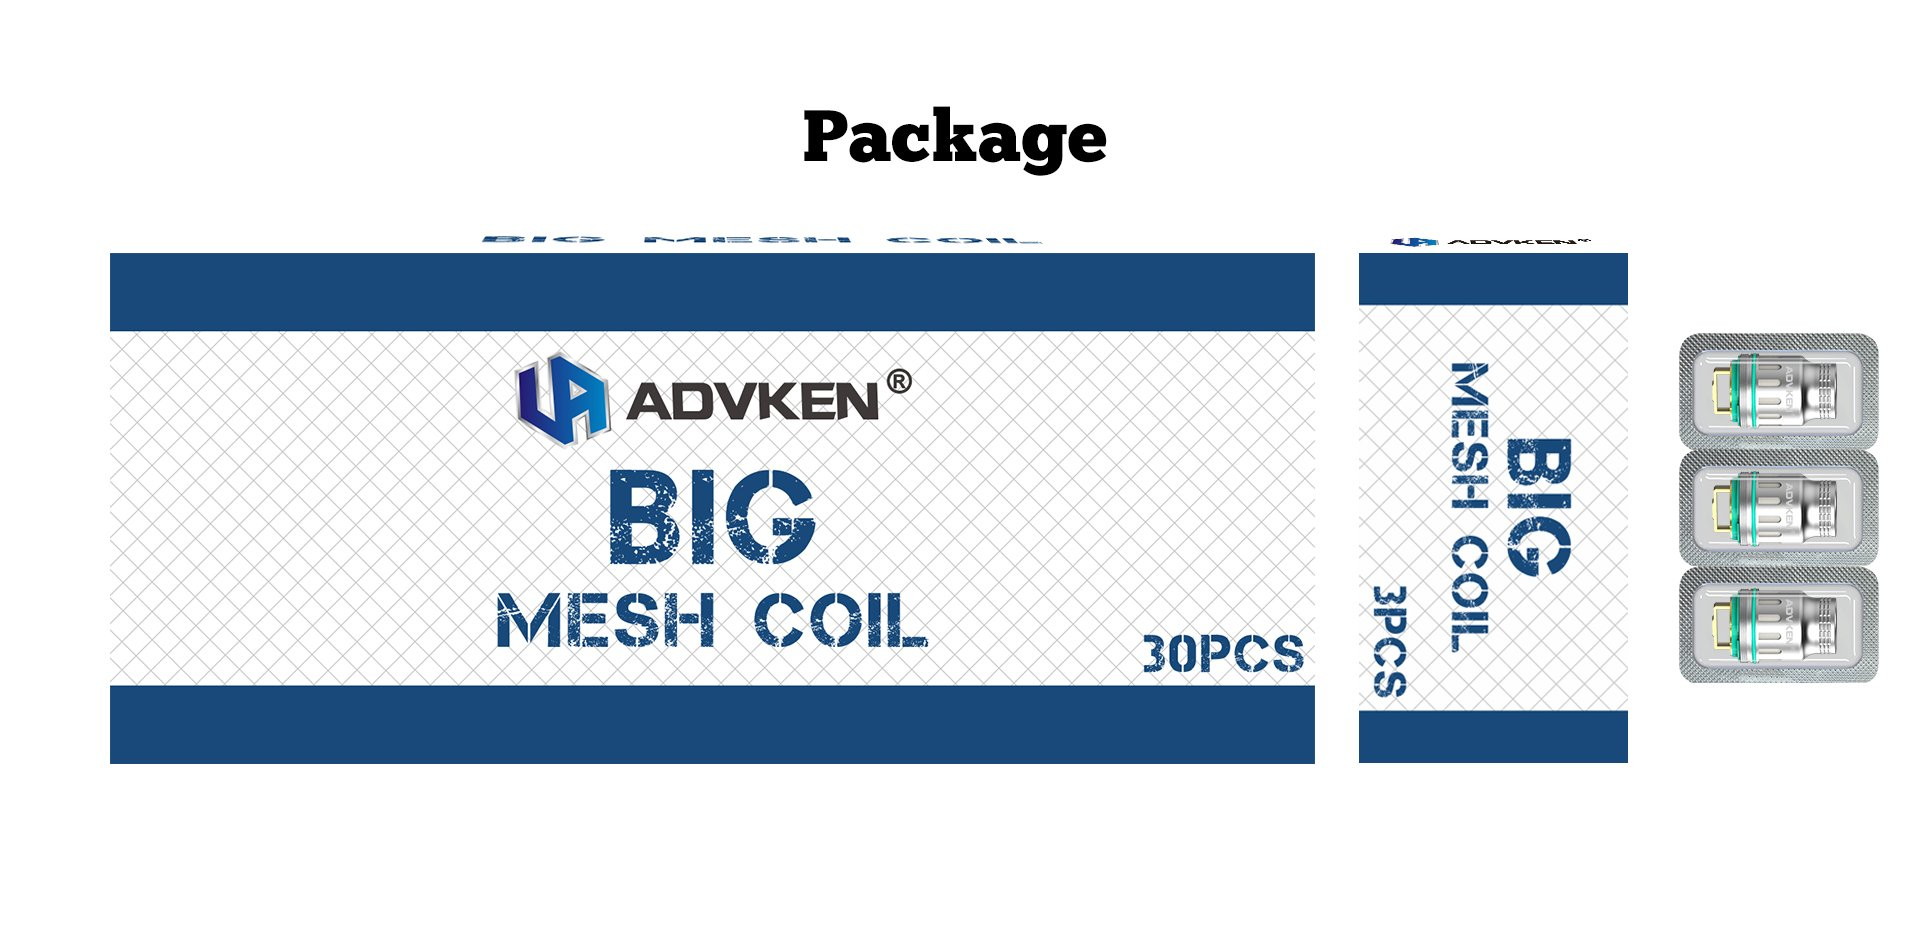 Advken Dark Mesh Coil Package